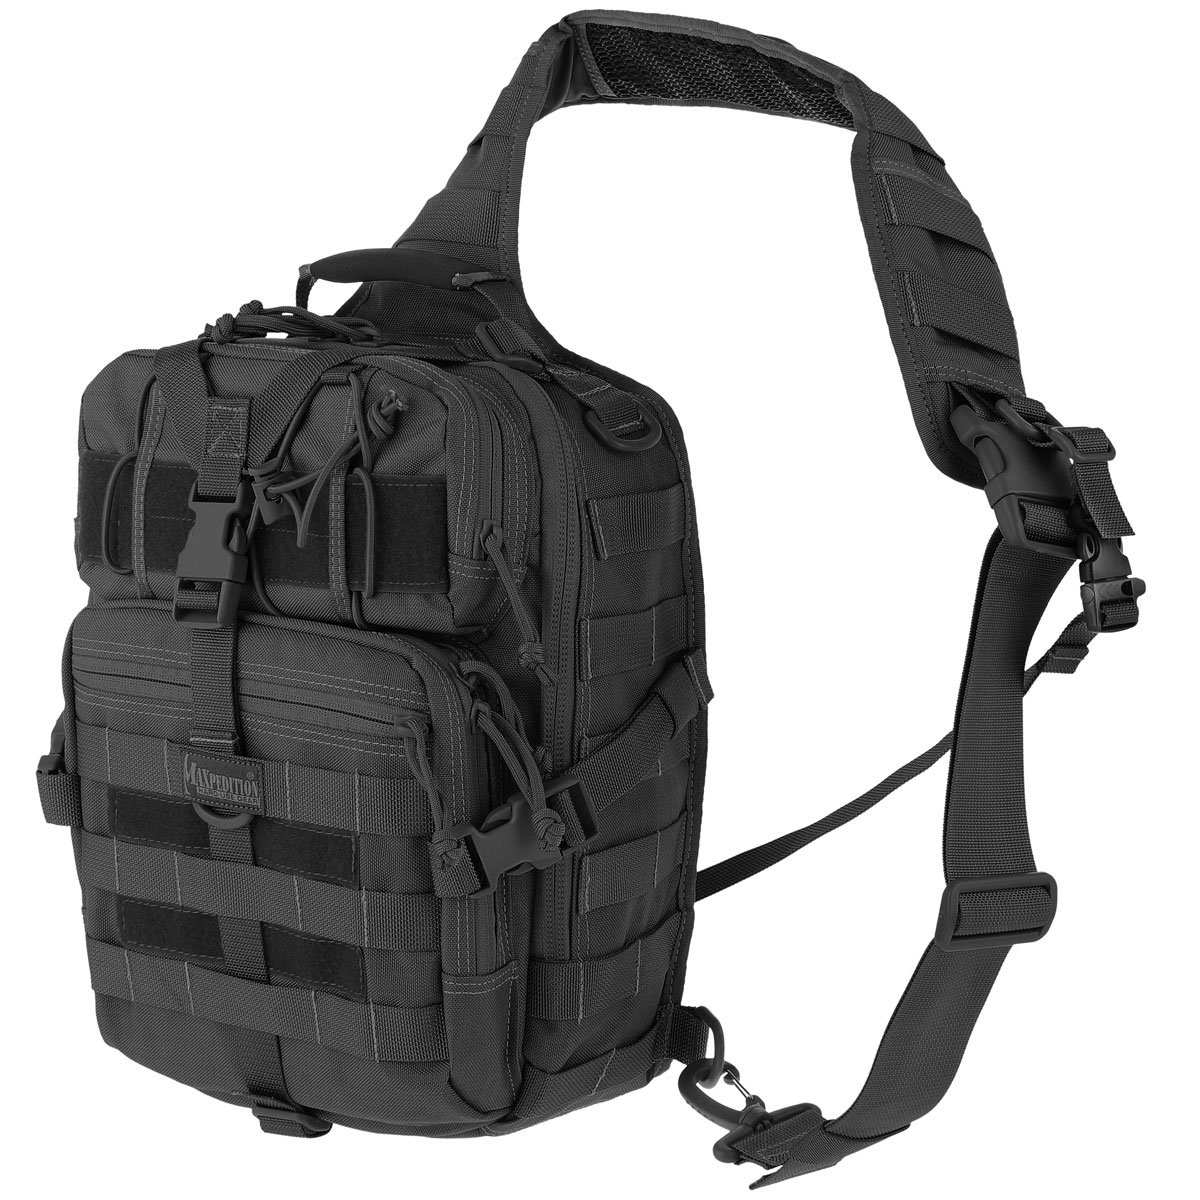 Balo Maxpedition Malaga Gearslinger - Black